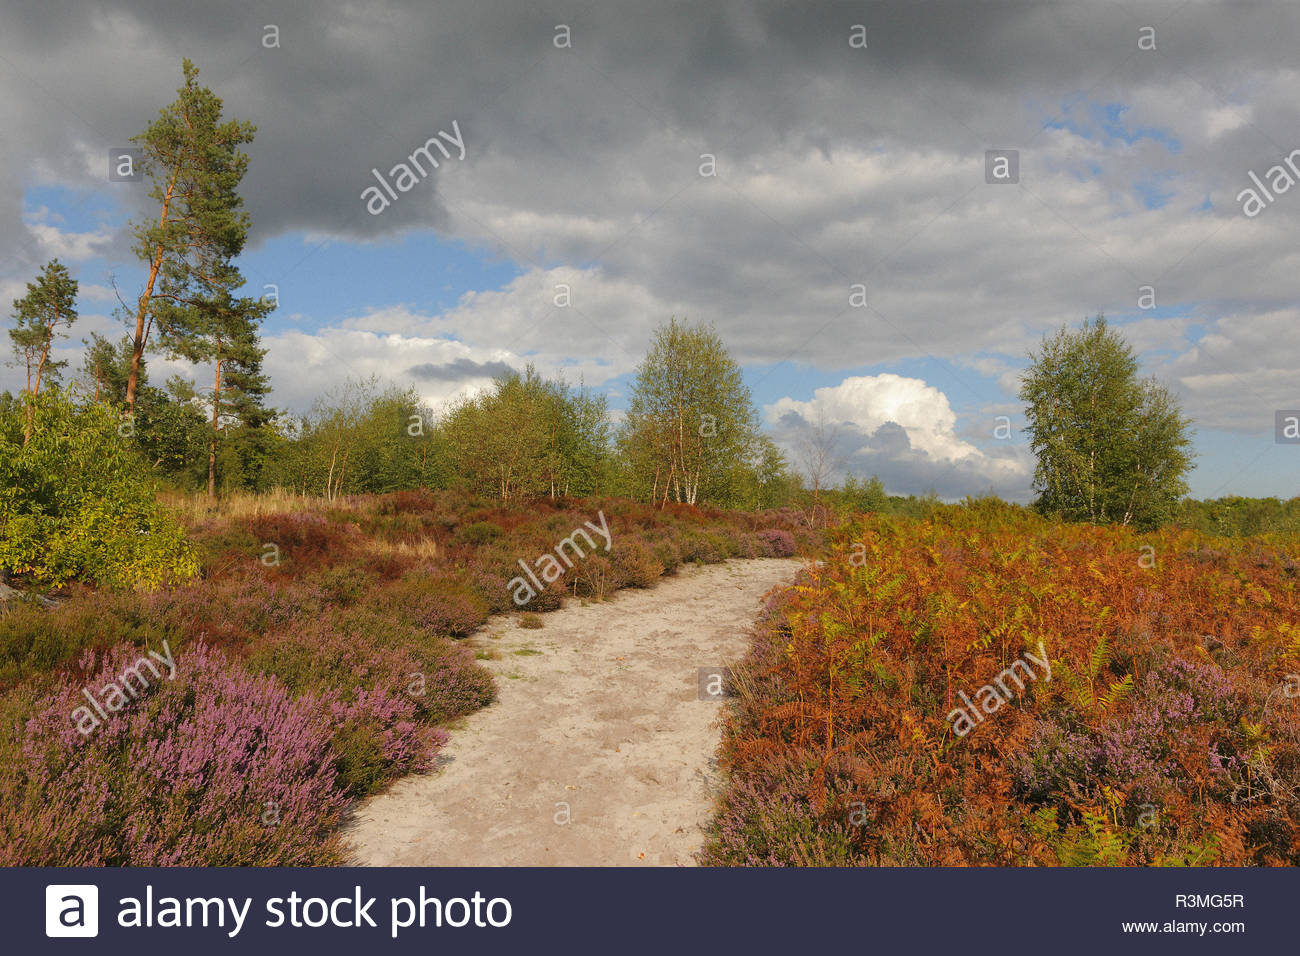 Heather moor (Calluna vulgaris) dotted with Scots pines (Pinus sylvestris), white birches (Betule pendula), and Eagle ferns (Pteridium aquilinum), on a sandy soil in a clearing in the Compiegne forest, at the end of the summer, Picardie, France. - Stock Image